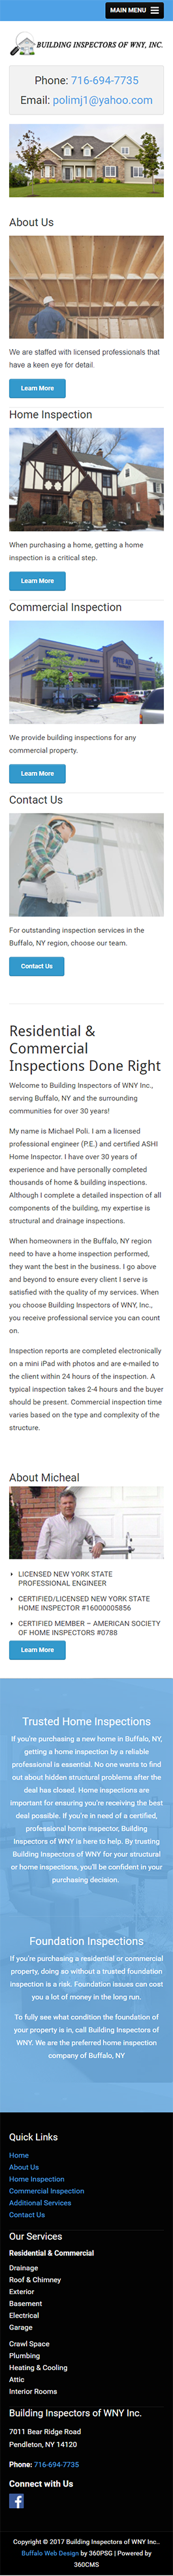 Building Inspectors of WNY Mobile